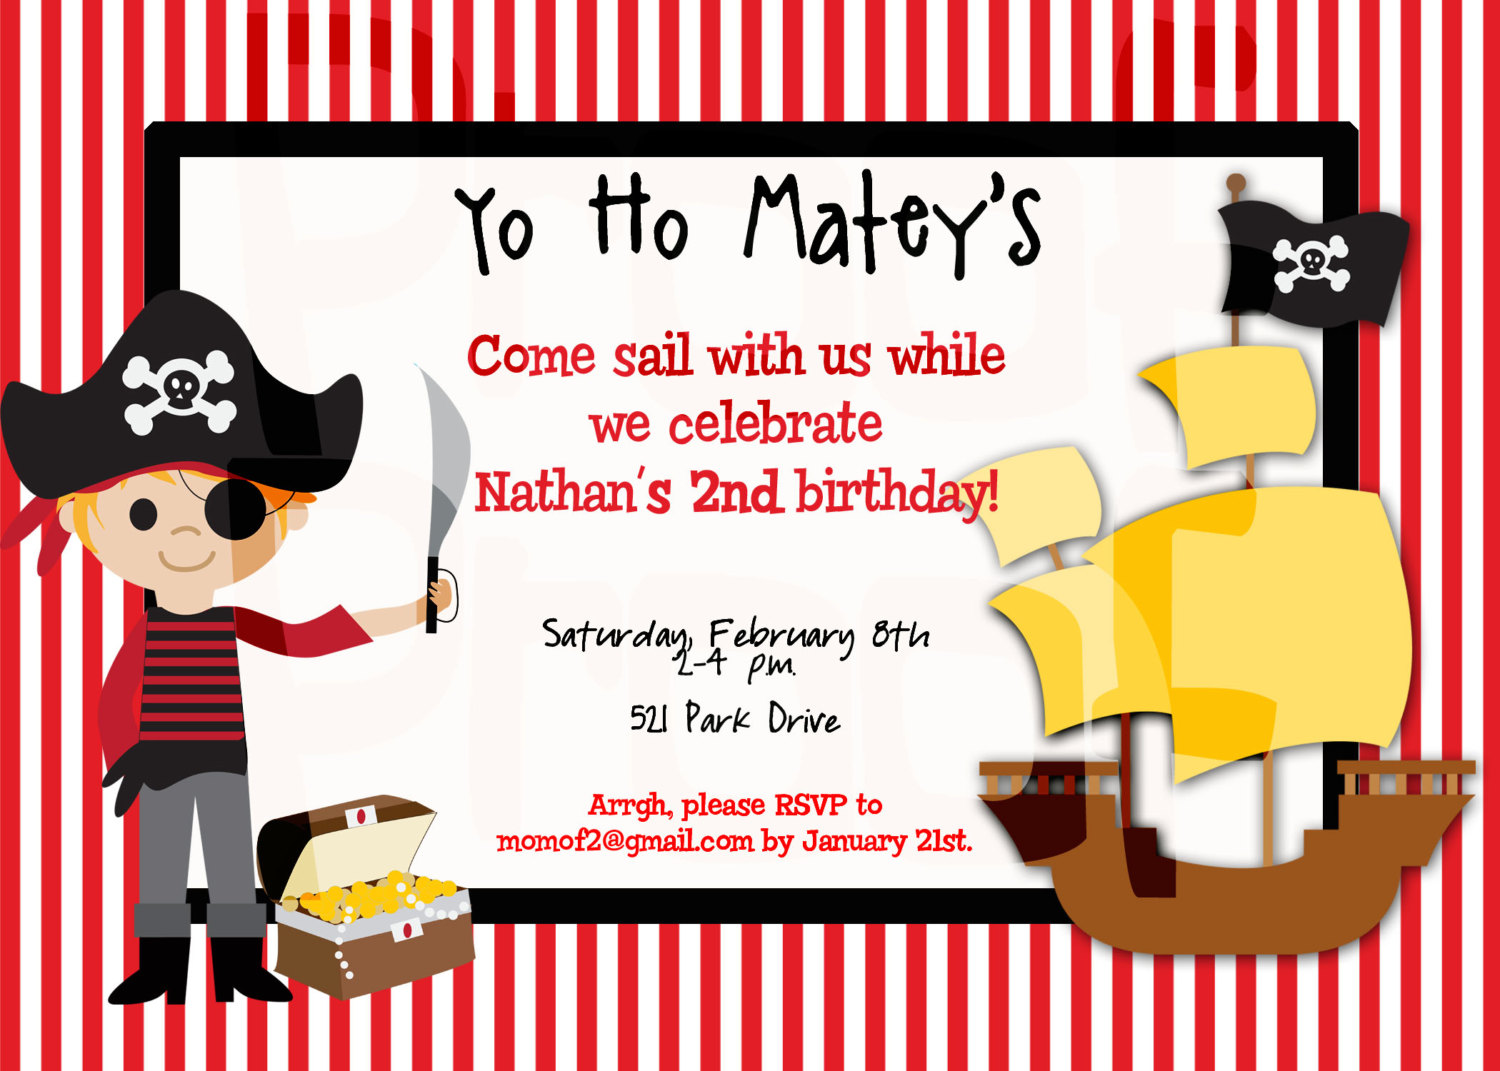 8th birthday invitation templates ; pirate-birthday-invitations-for-the-invitations-design-of-your-inspiration-Birthday-Invitation-Templates-party-8